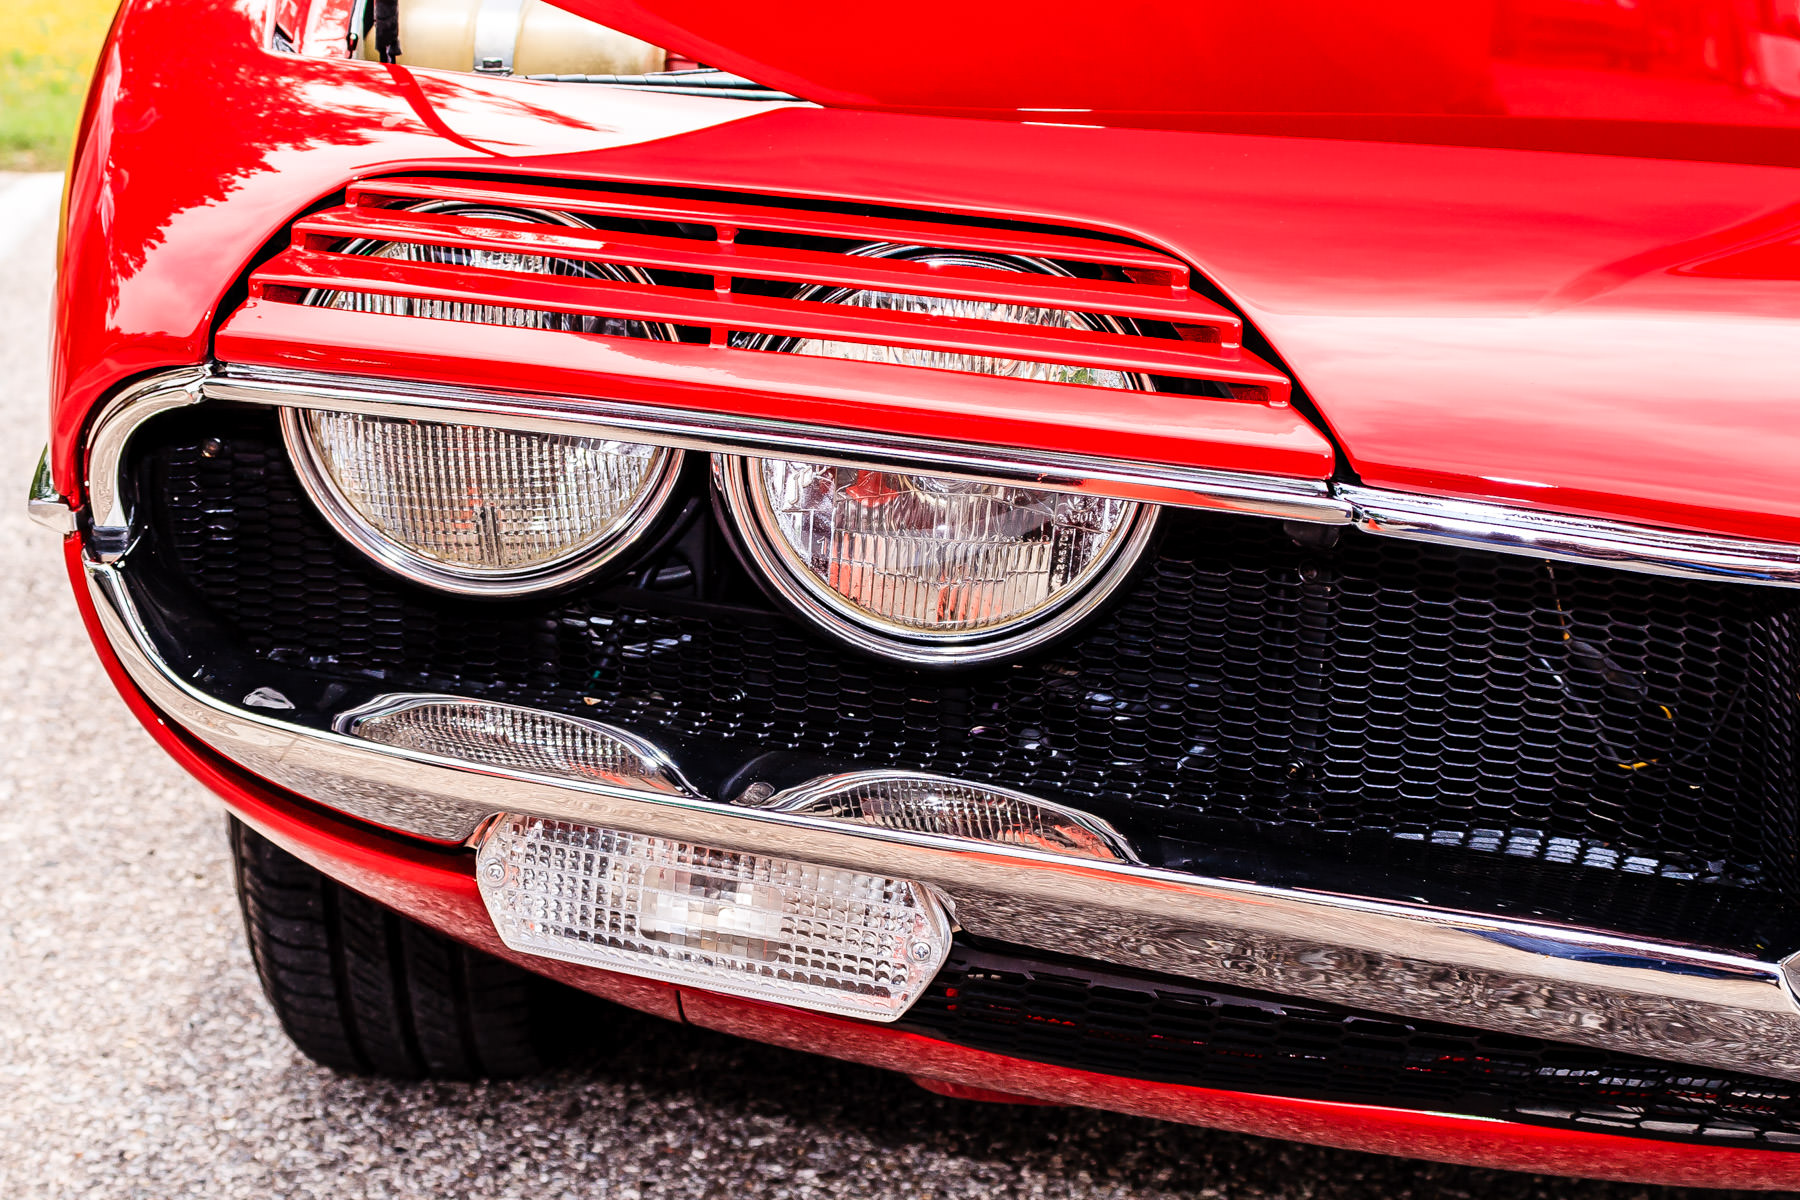 Detail of an Alfa Romeo Montreal, a sports coupe that was produced from 1970-1977 and so-named because it was introduced as a concept car at Expo'67 in Montréal.  This particular example was spotted at All British and European Car Day, Dallas, Texas.